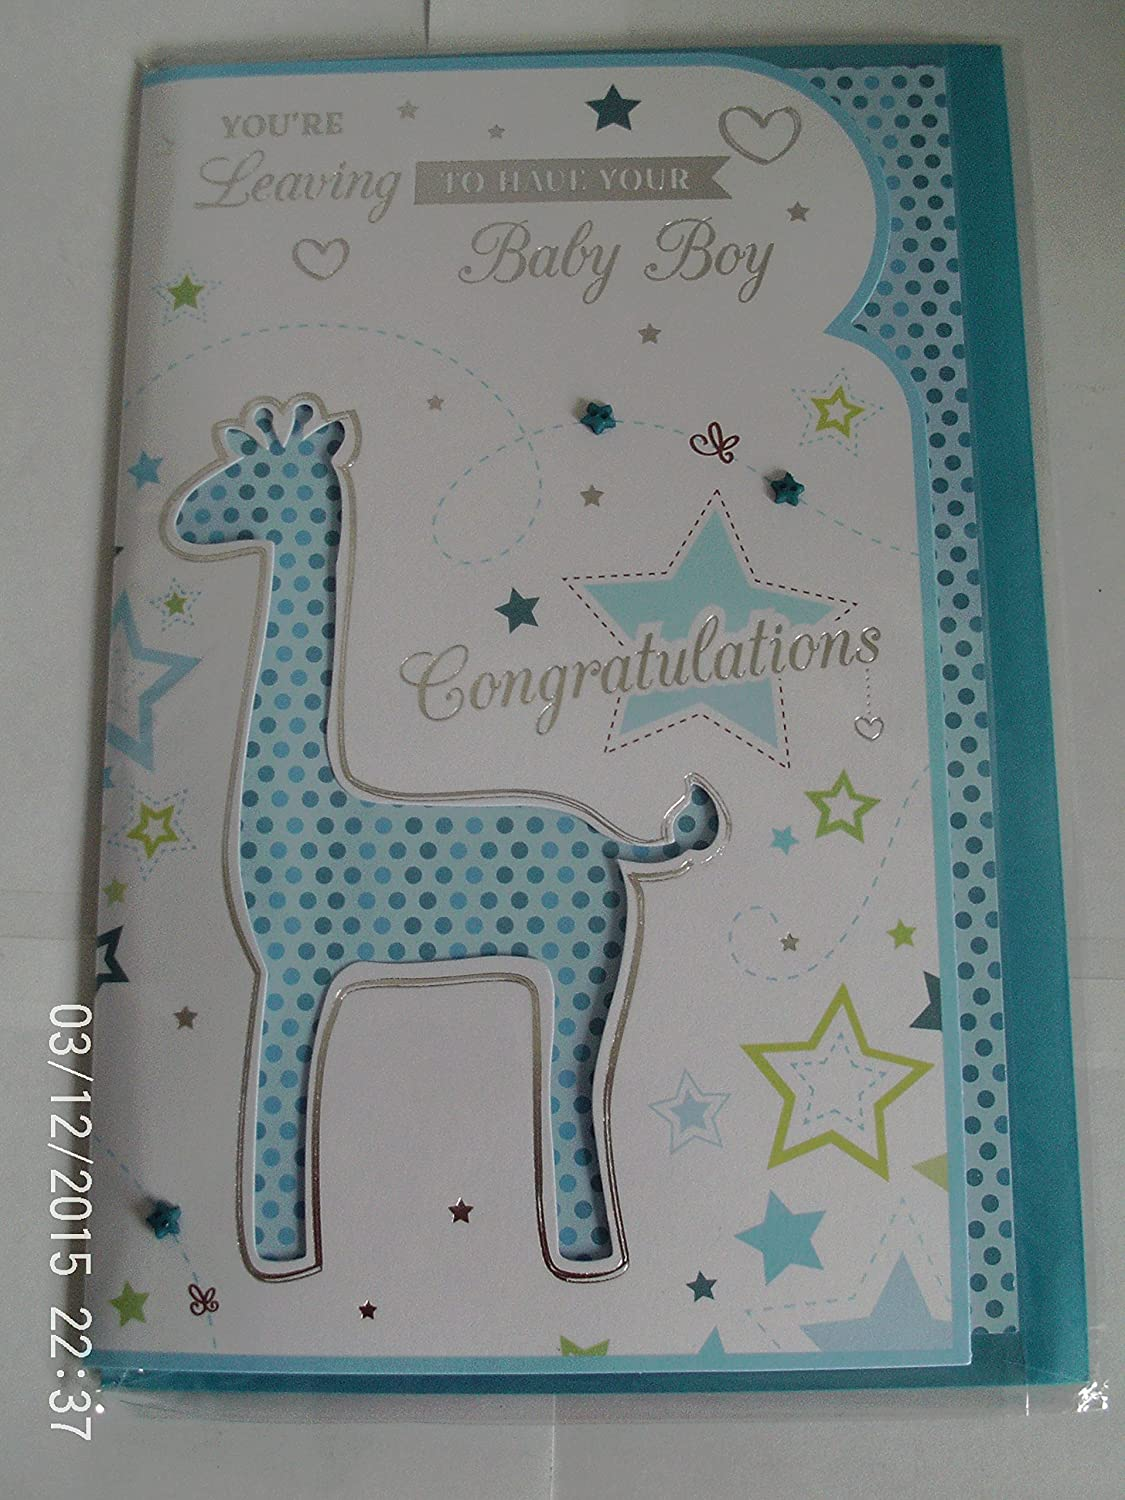 You're Leaving To Have Your Baby Boy Card BGC Studios